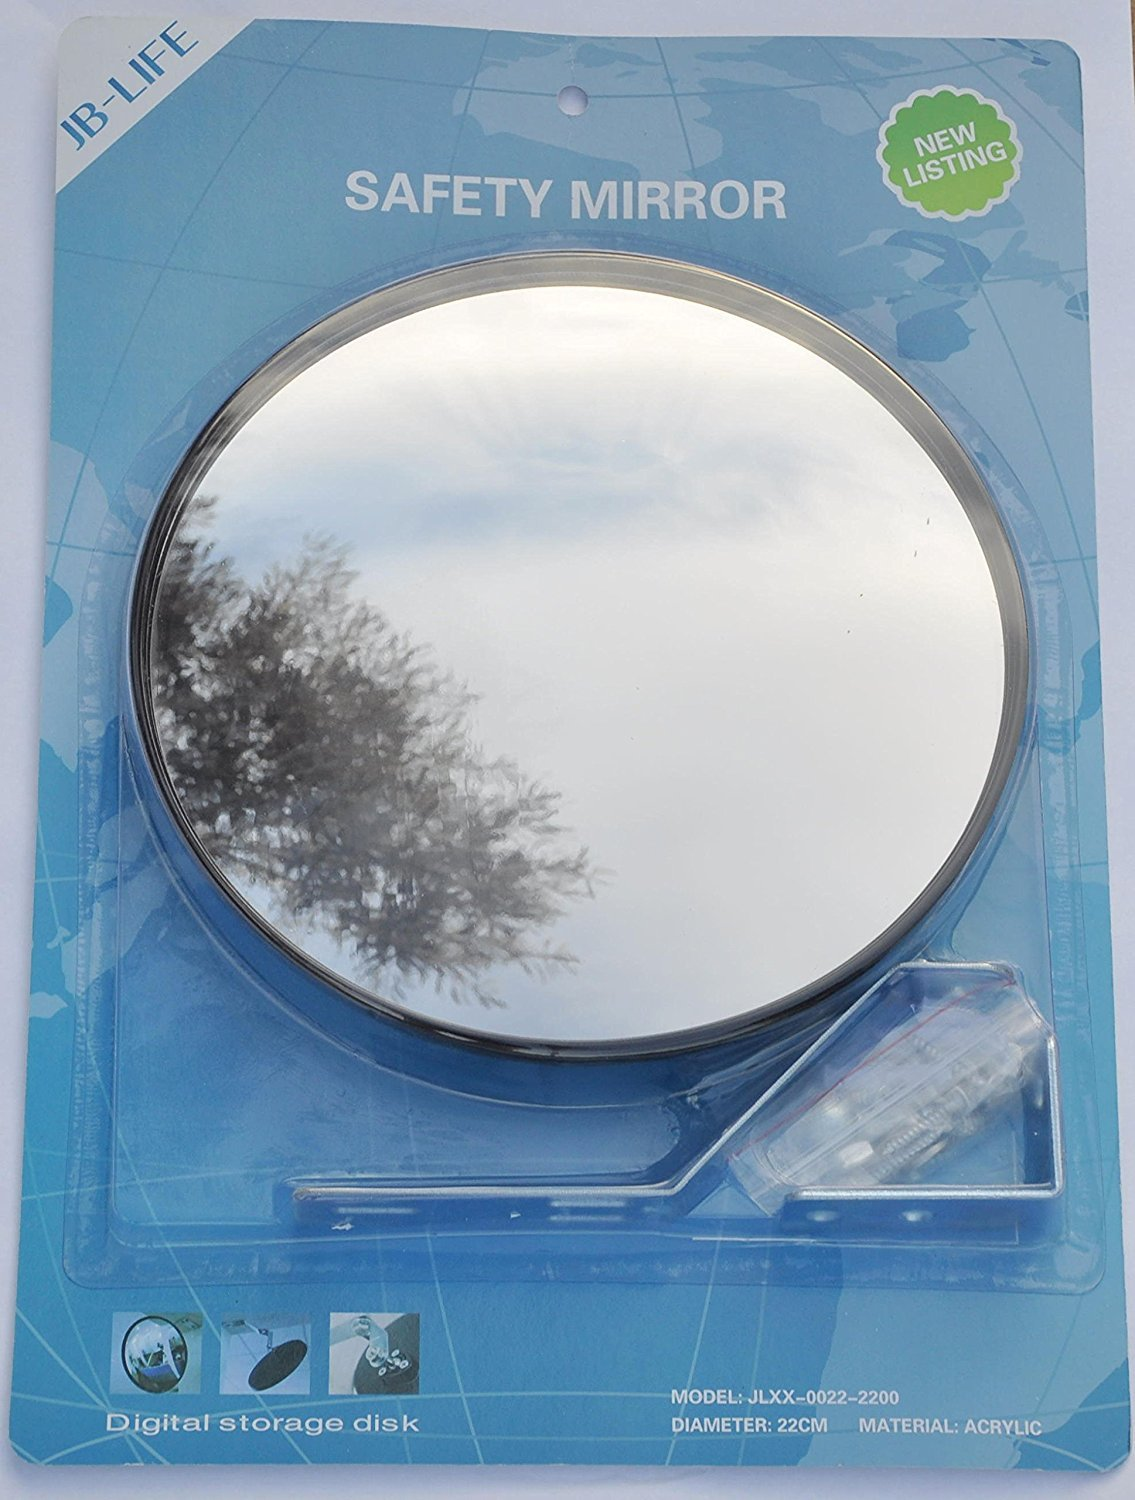 SNS SAFETY LTD JCM-22i Convex Acrylic Mirror, diameter 9'' (22cm), for Parking Safety and Shop Security with Adjustable Wall or Ceiling Fixing Bracket